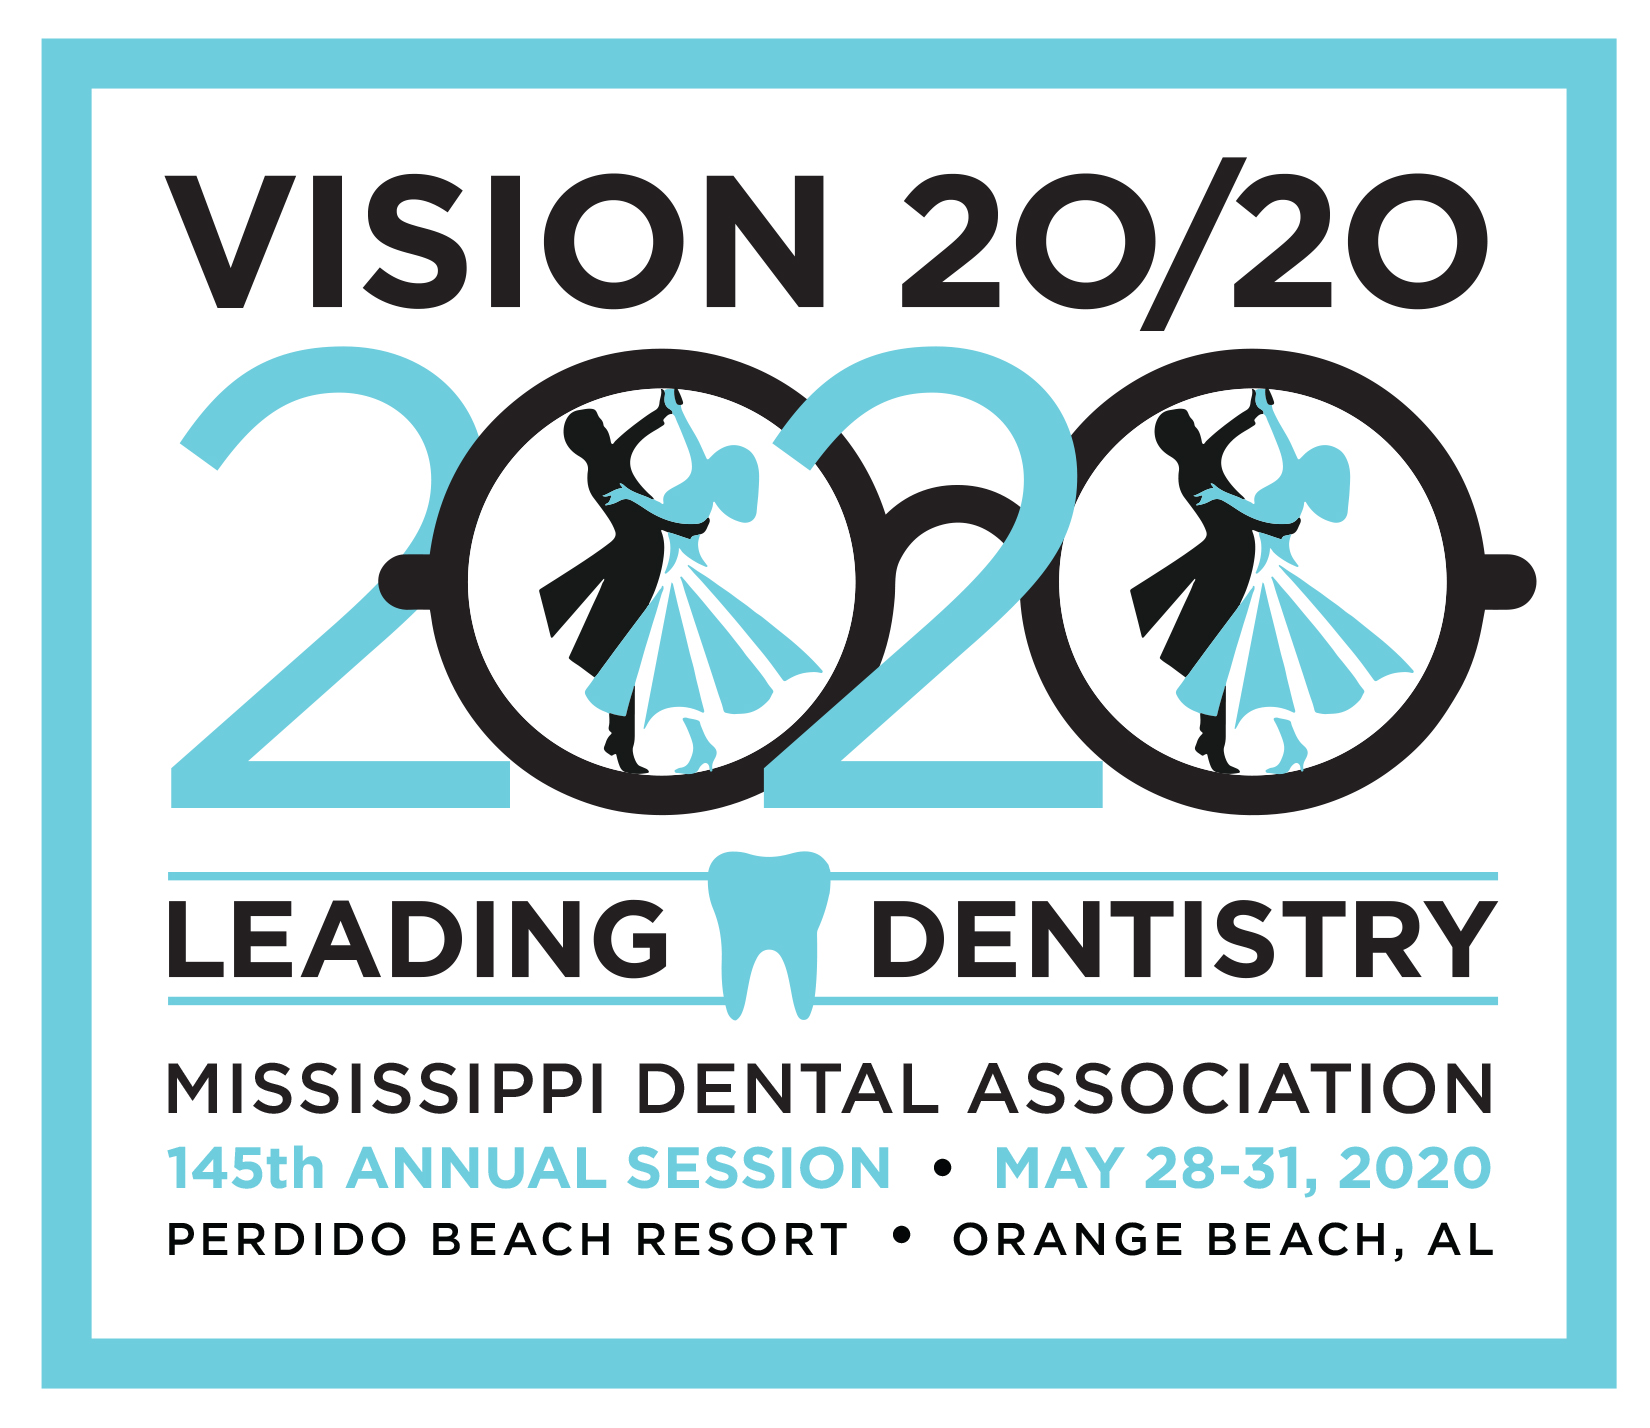 Vision 2020 Leading Dentistry